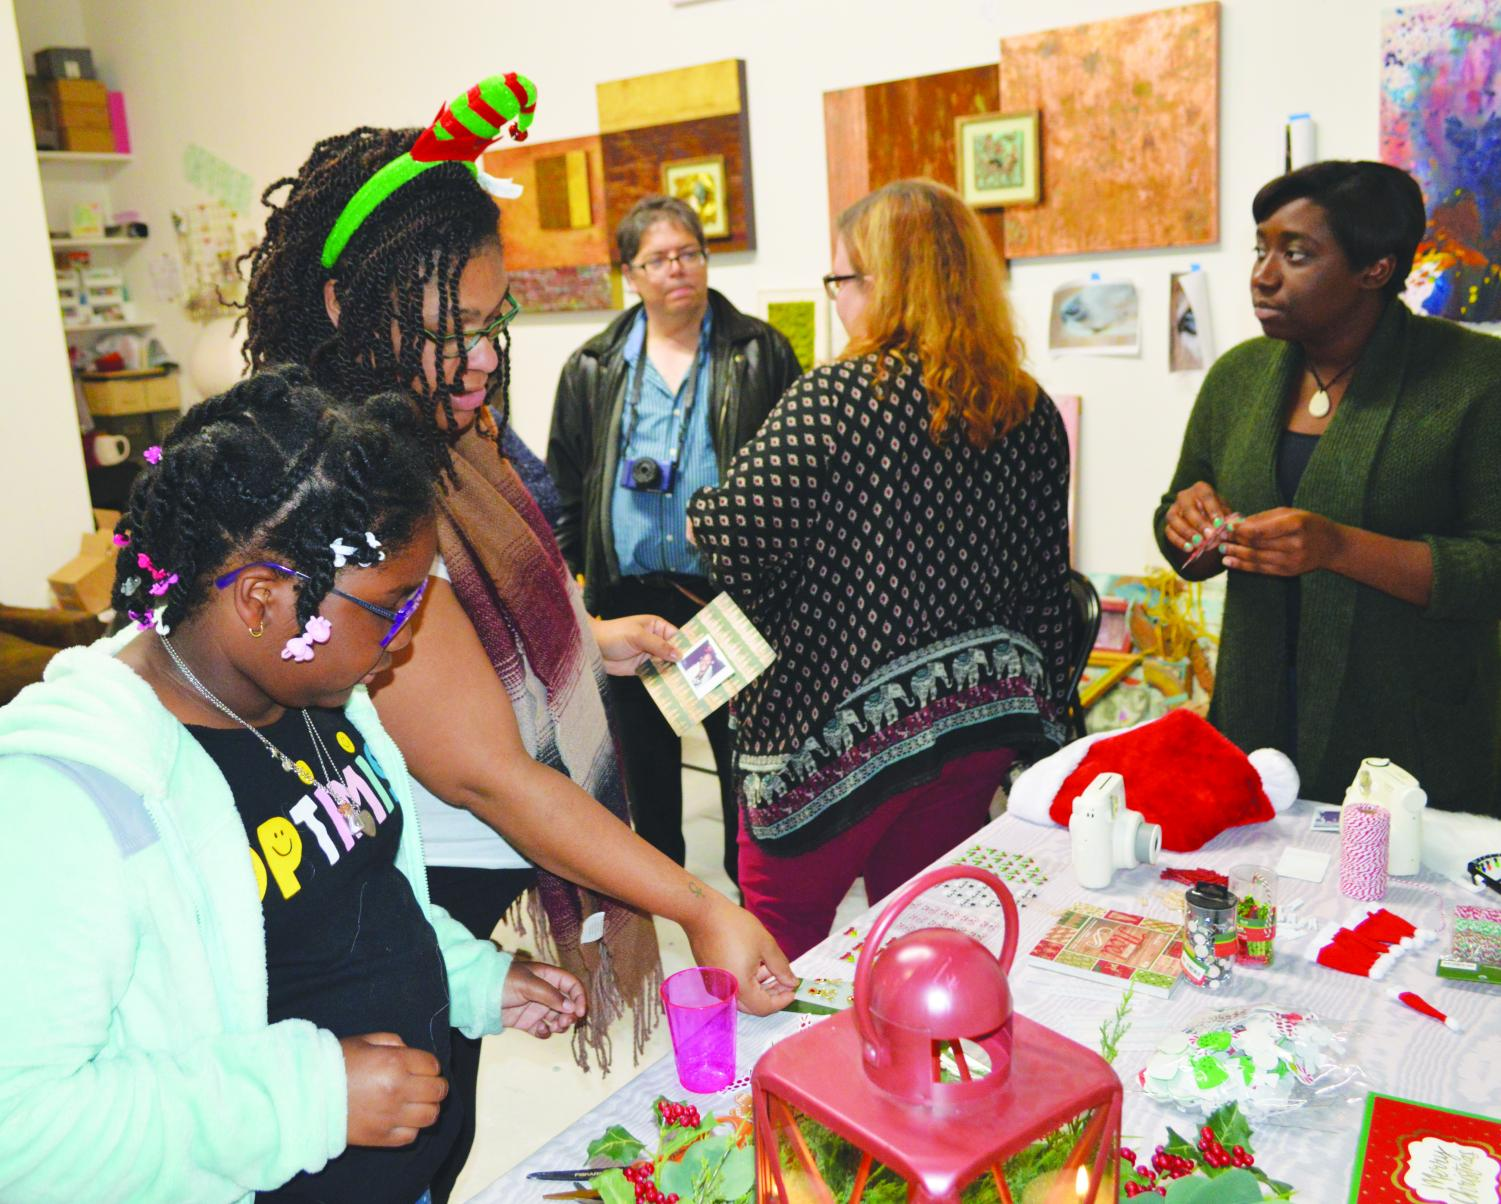 FMU Students take part in creating ornaments from Polaroids at TthomasArts, a local art studio, during the Nov. 9 workshops.